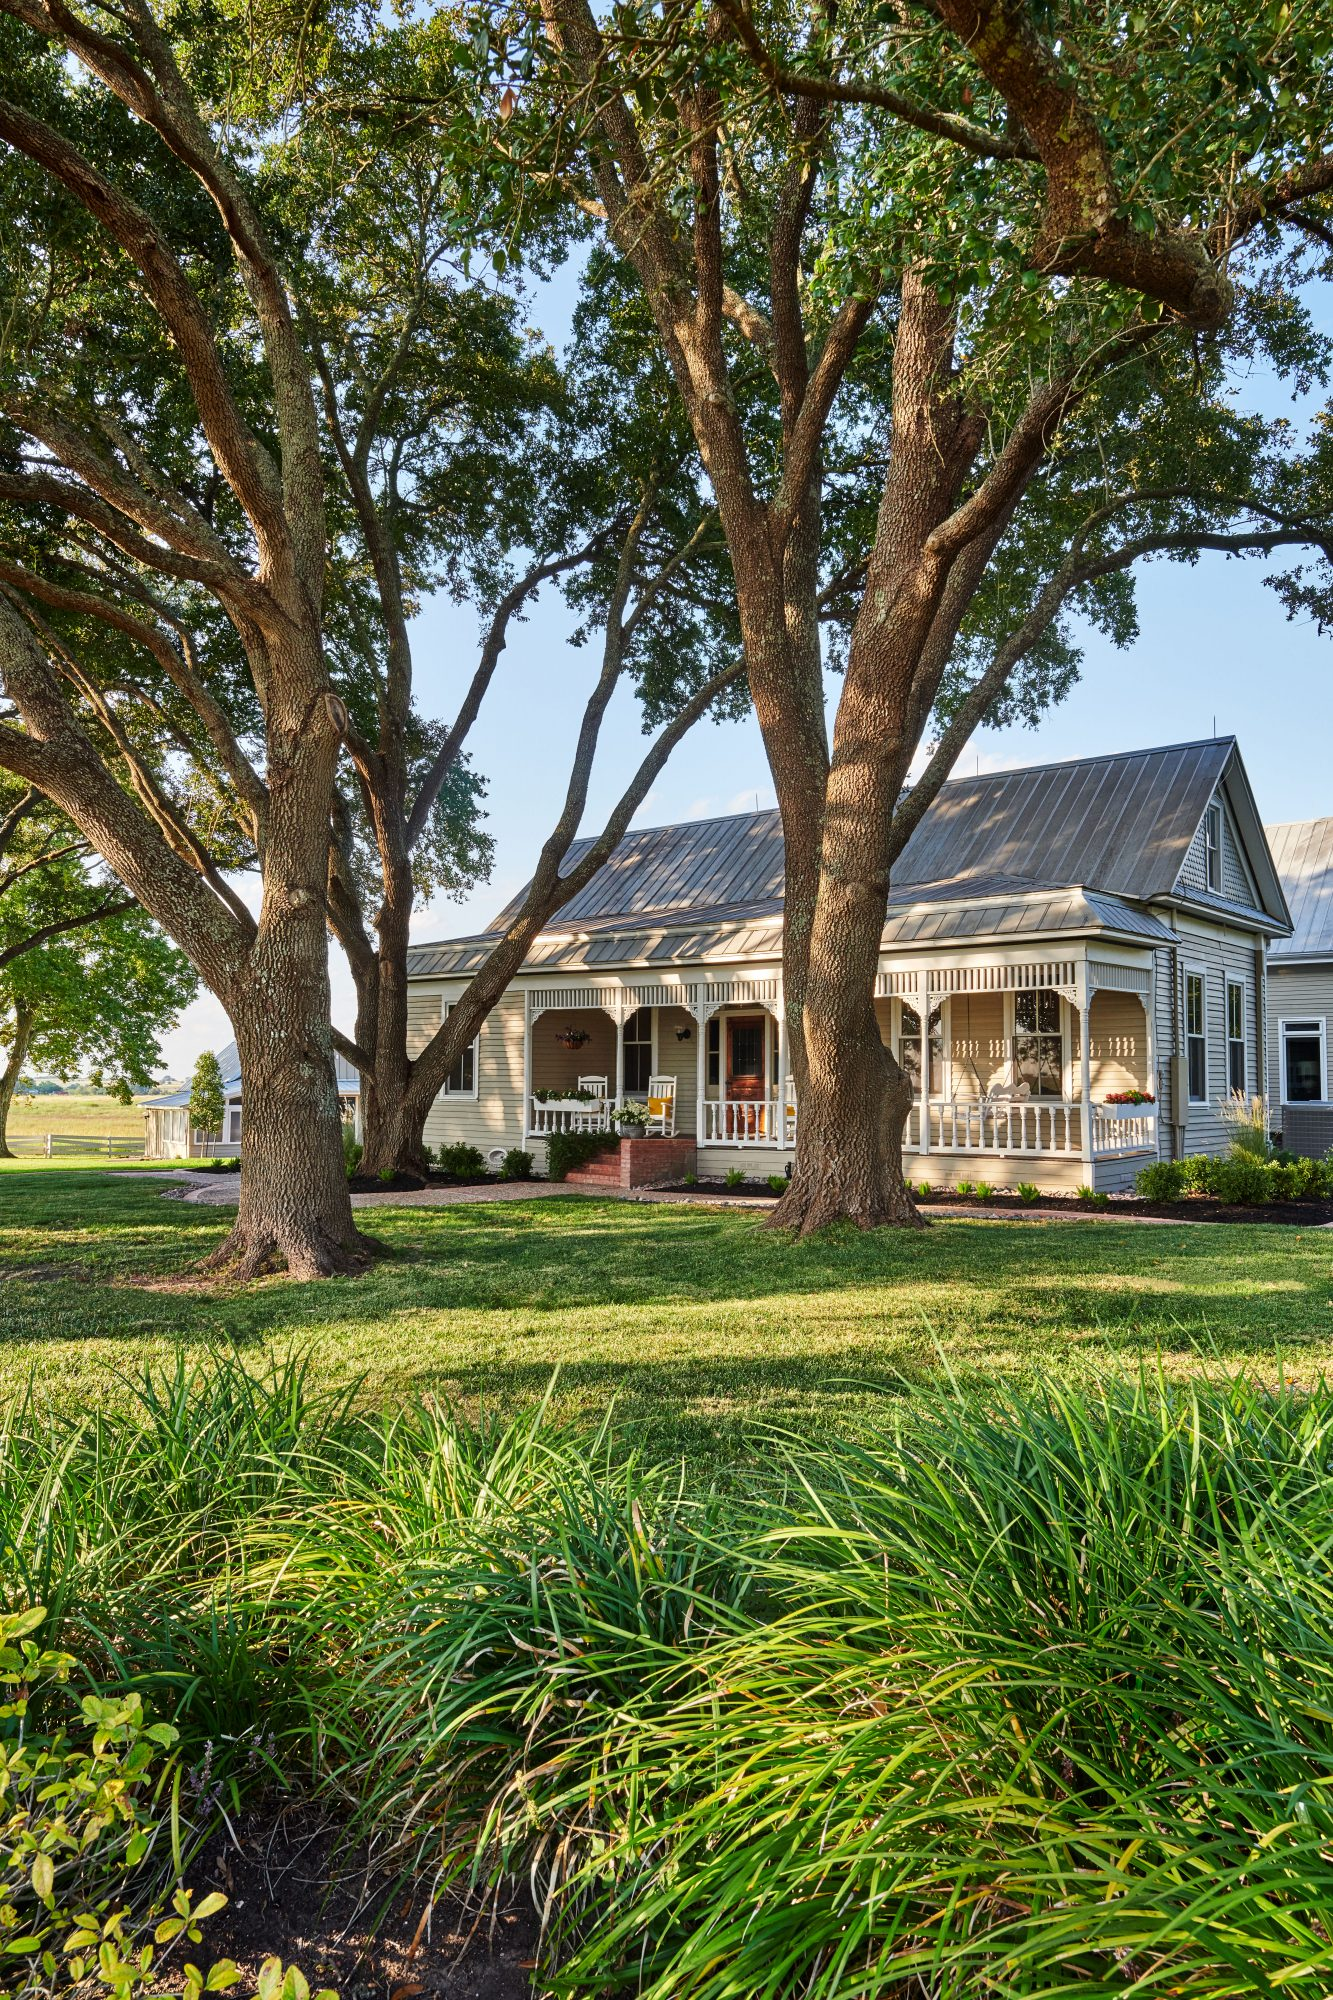 Braden Family 1907 Farmhouse in Brenham, TX Exterior